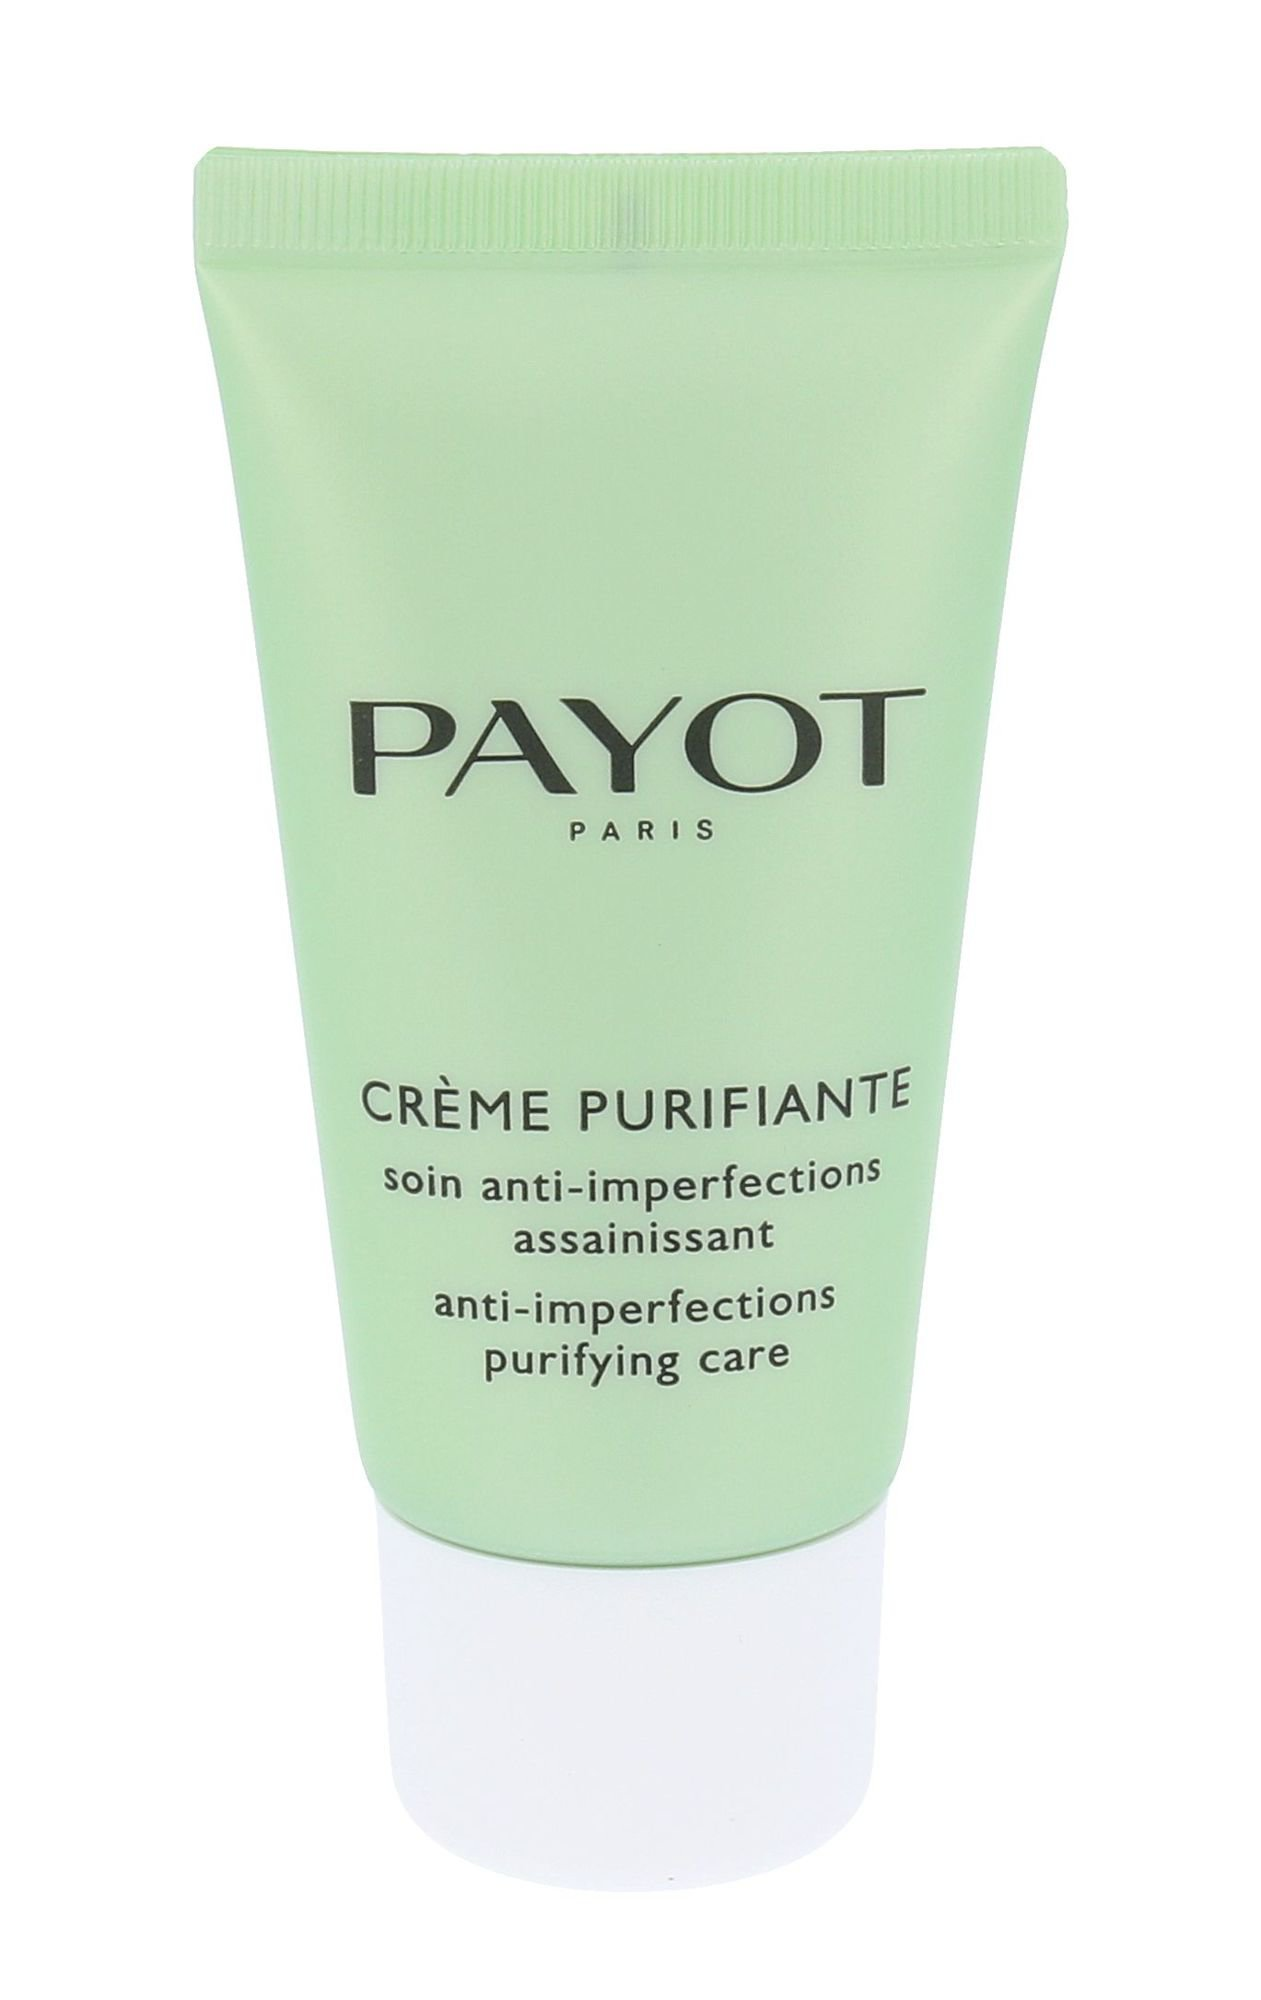 PAYOT Pate Grise Anti-Imperfections Purifying Care, Čistiaci krém 50ml